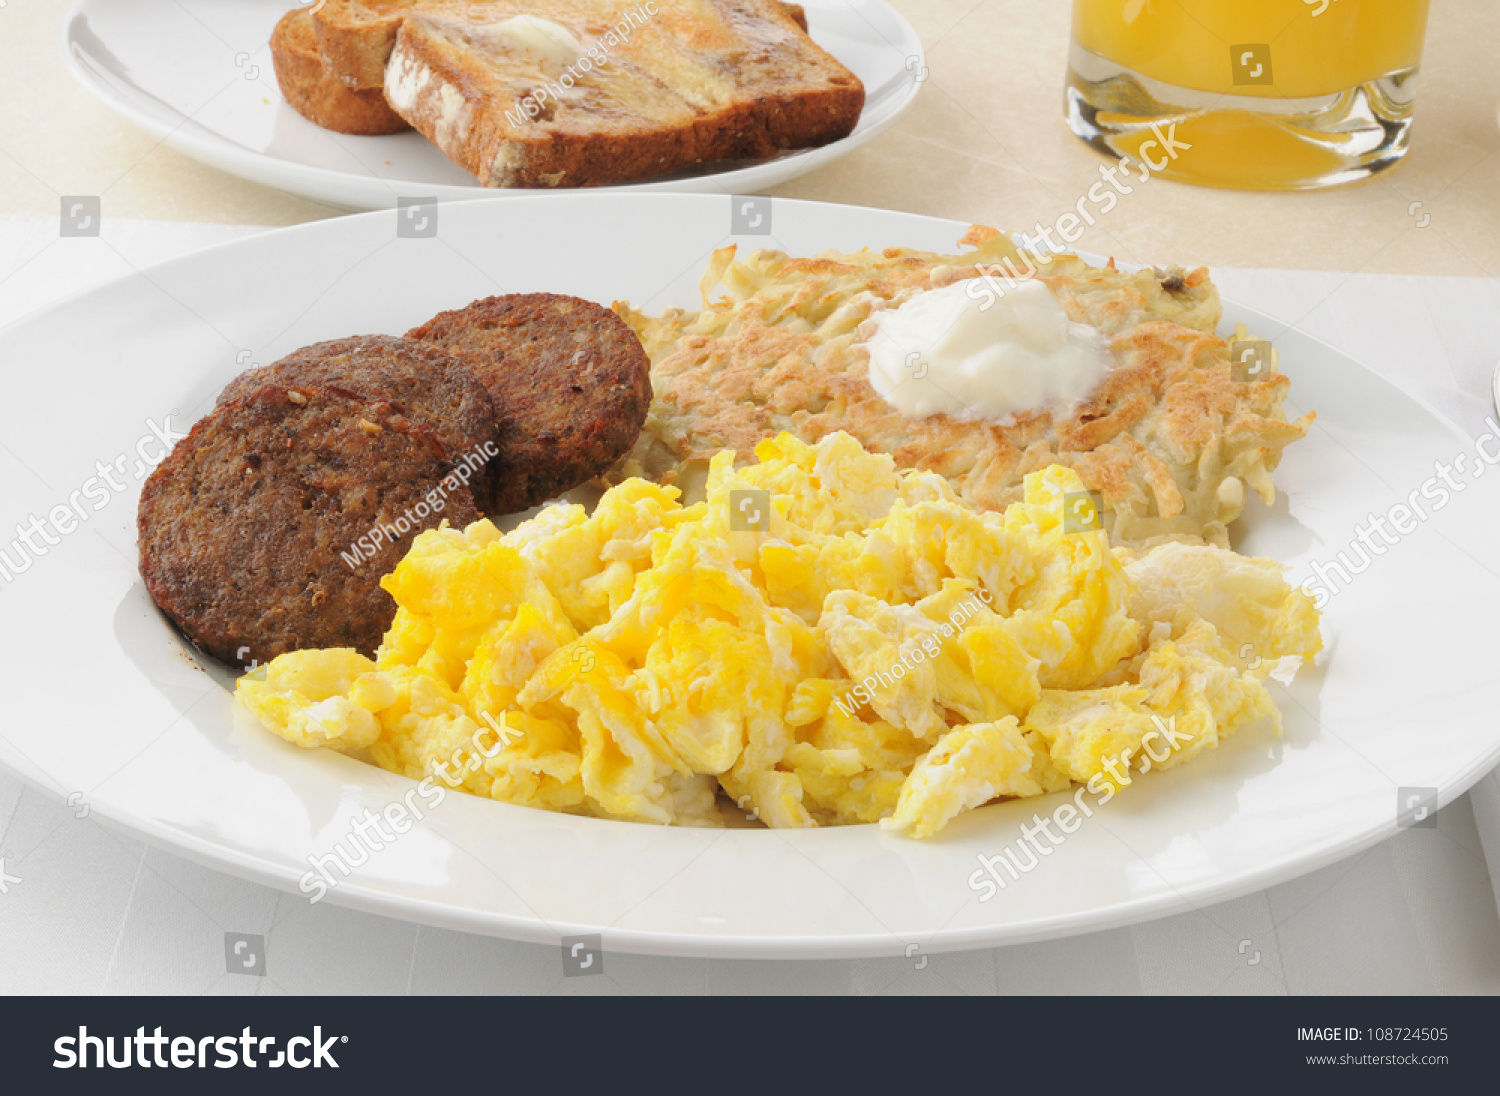 Sausage Patties With Scrambled Eggs And Potato Pancakes Or ...